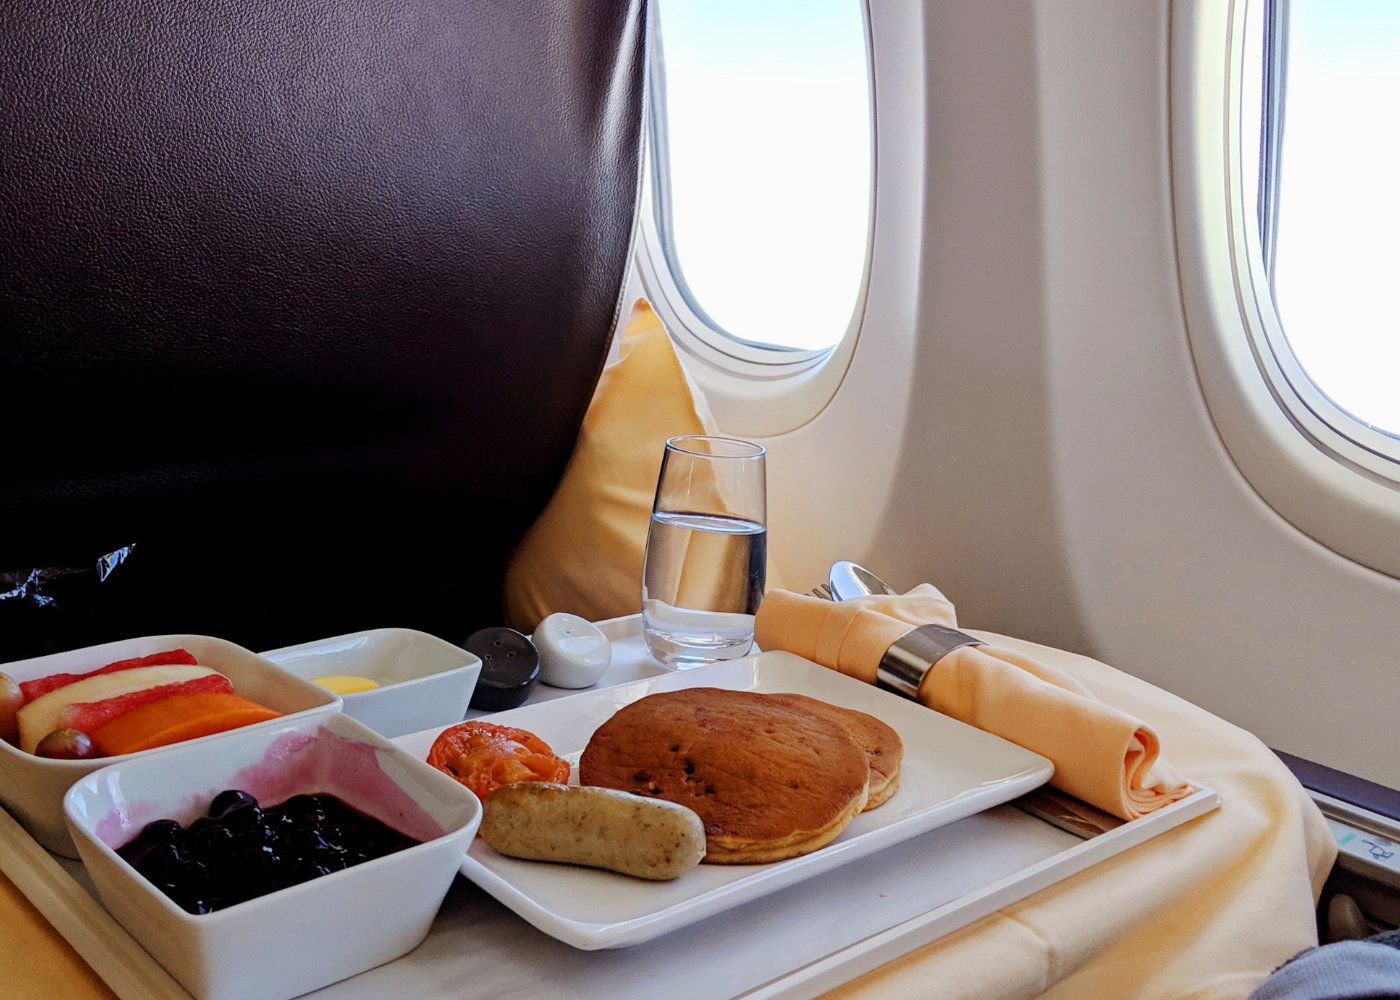 Breakfast pancakes on board the flight.